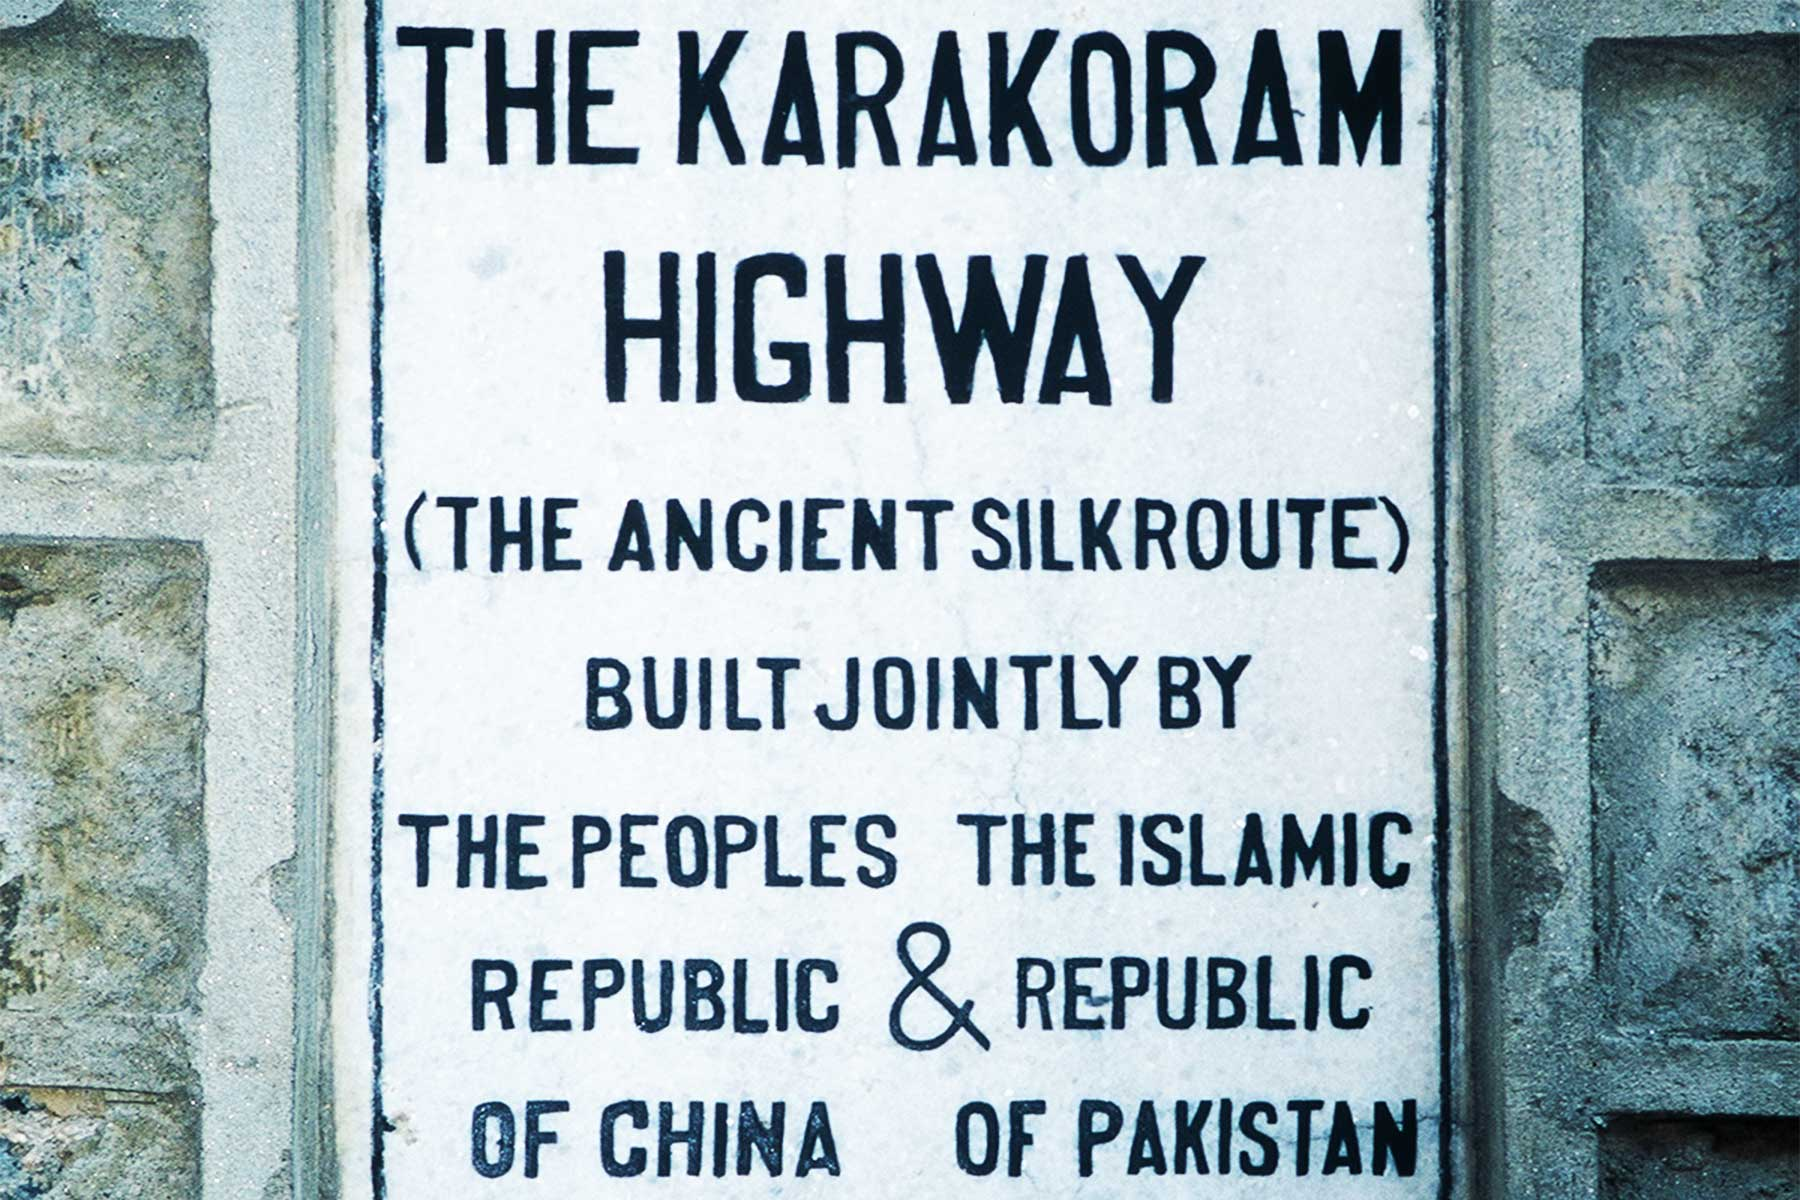 The Karakoram Highway - Ancient Silk Route - Islamic Republic Pakistan - Republic of China - Steven Martin